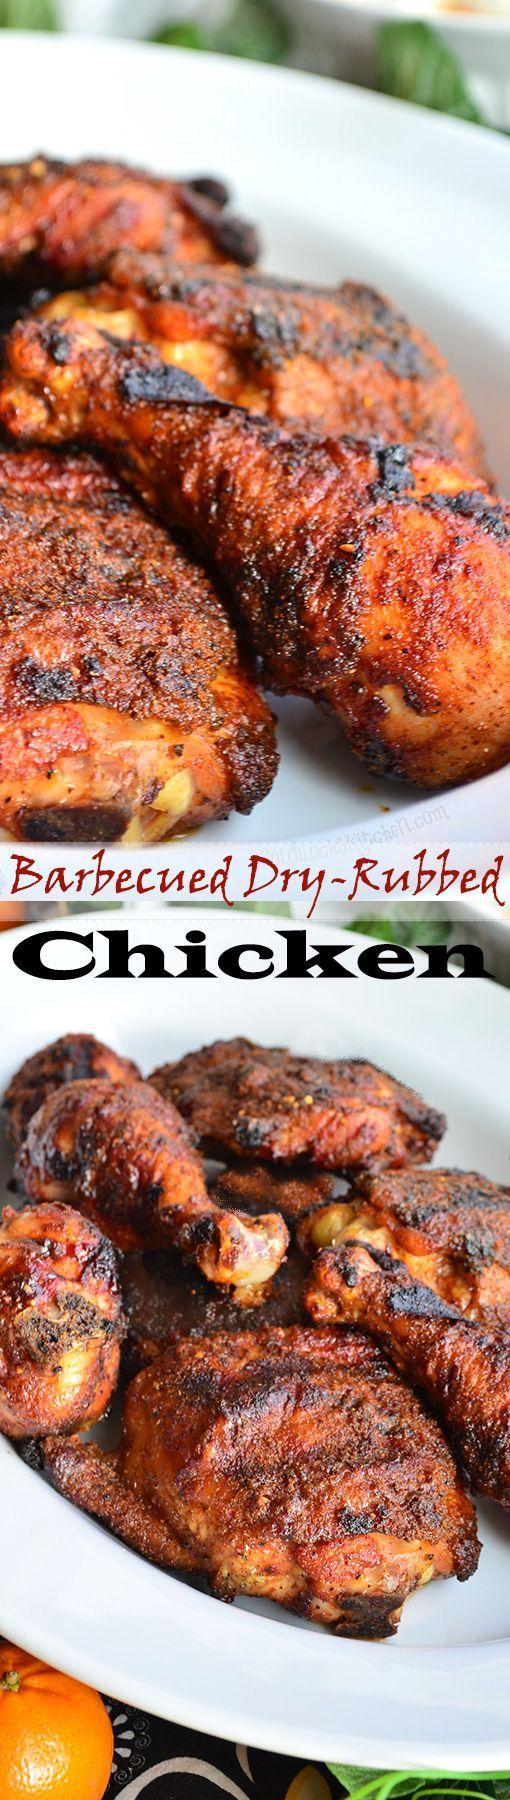 This Barbeque Dry-Rubbed Chicken recipe seasons the meat with a rub that ends up melting as the chicken cooks and turning into an incredibly savory glaze. Best flavor ever! 1y